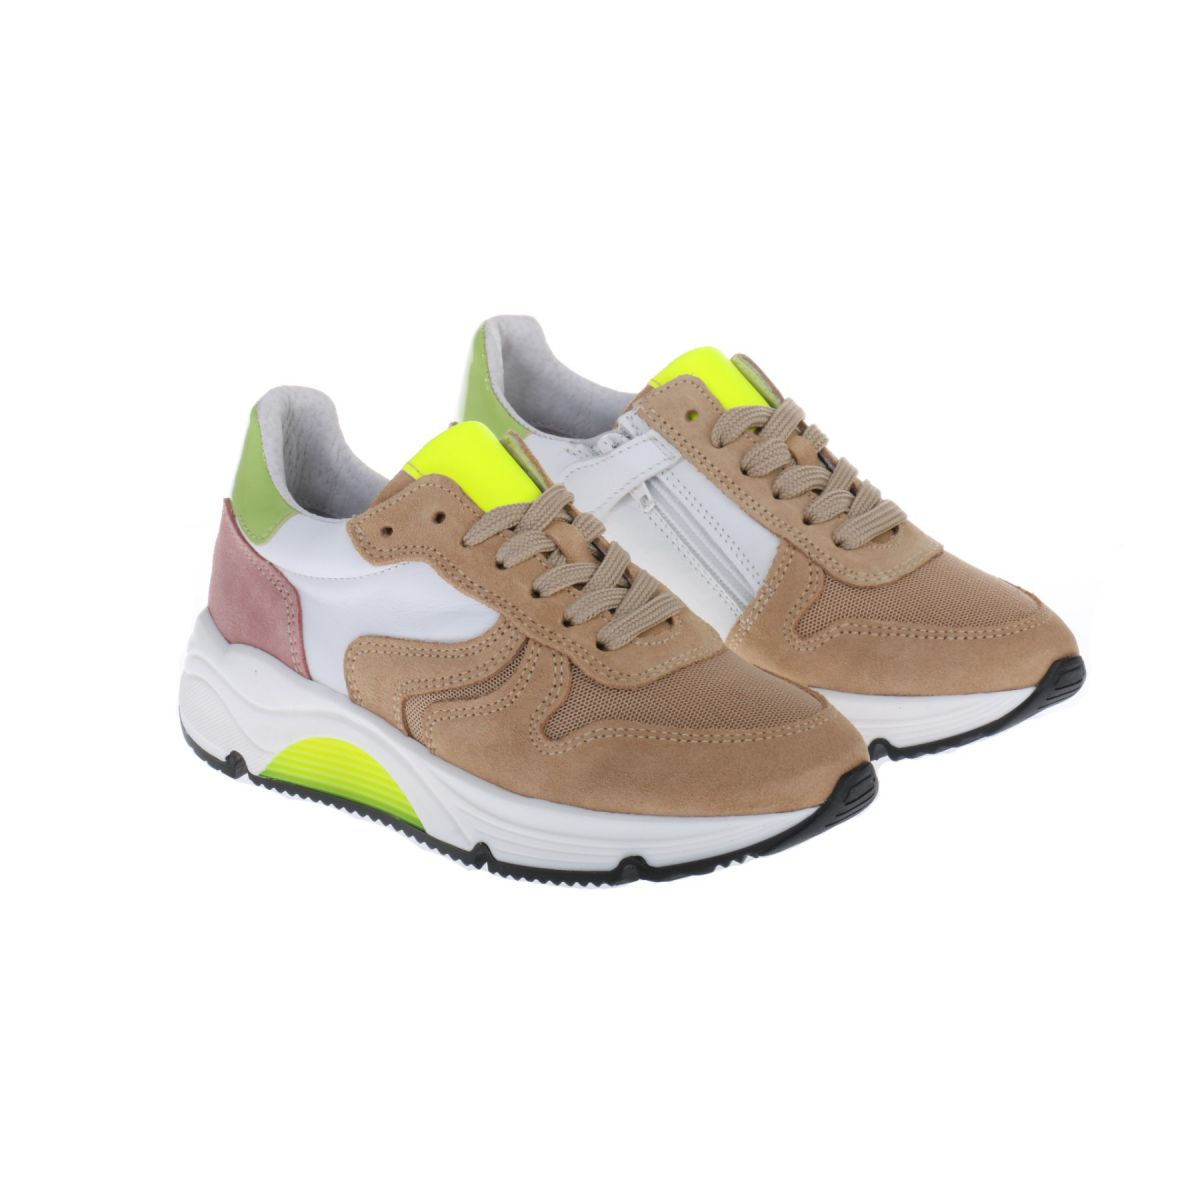 HIP H1343 Sneakers Beige Mint Groen